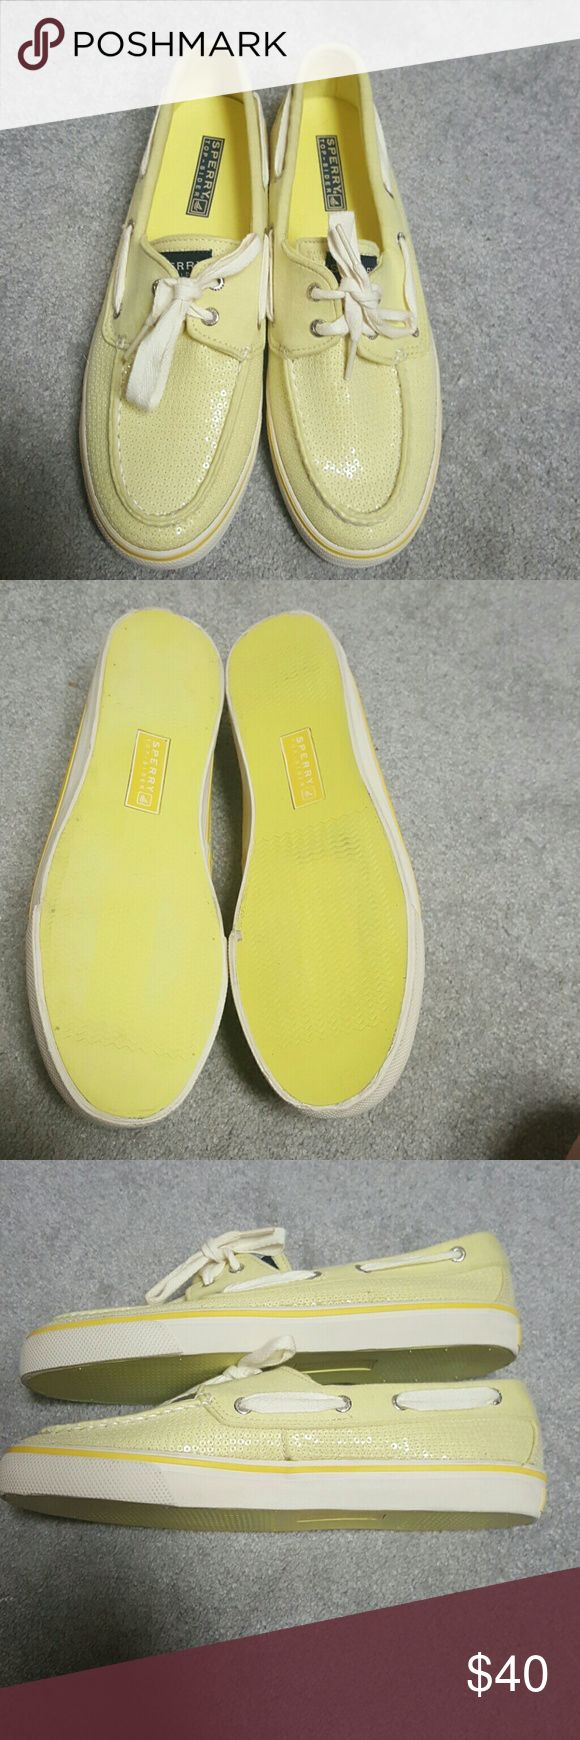 Sperry Topsider Yellow sequin sperry topsiders perfect condition with clear sequins worn once does not come with box Sperry Top-Sider Shoes Flats & Loafers